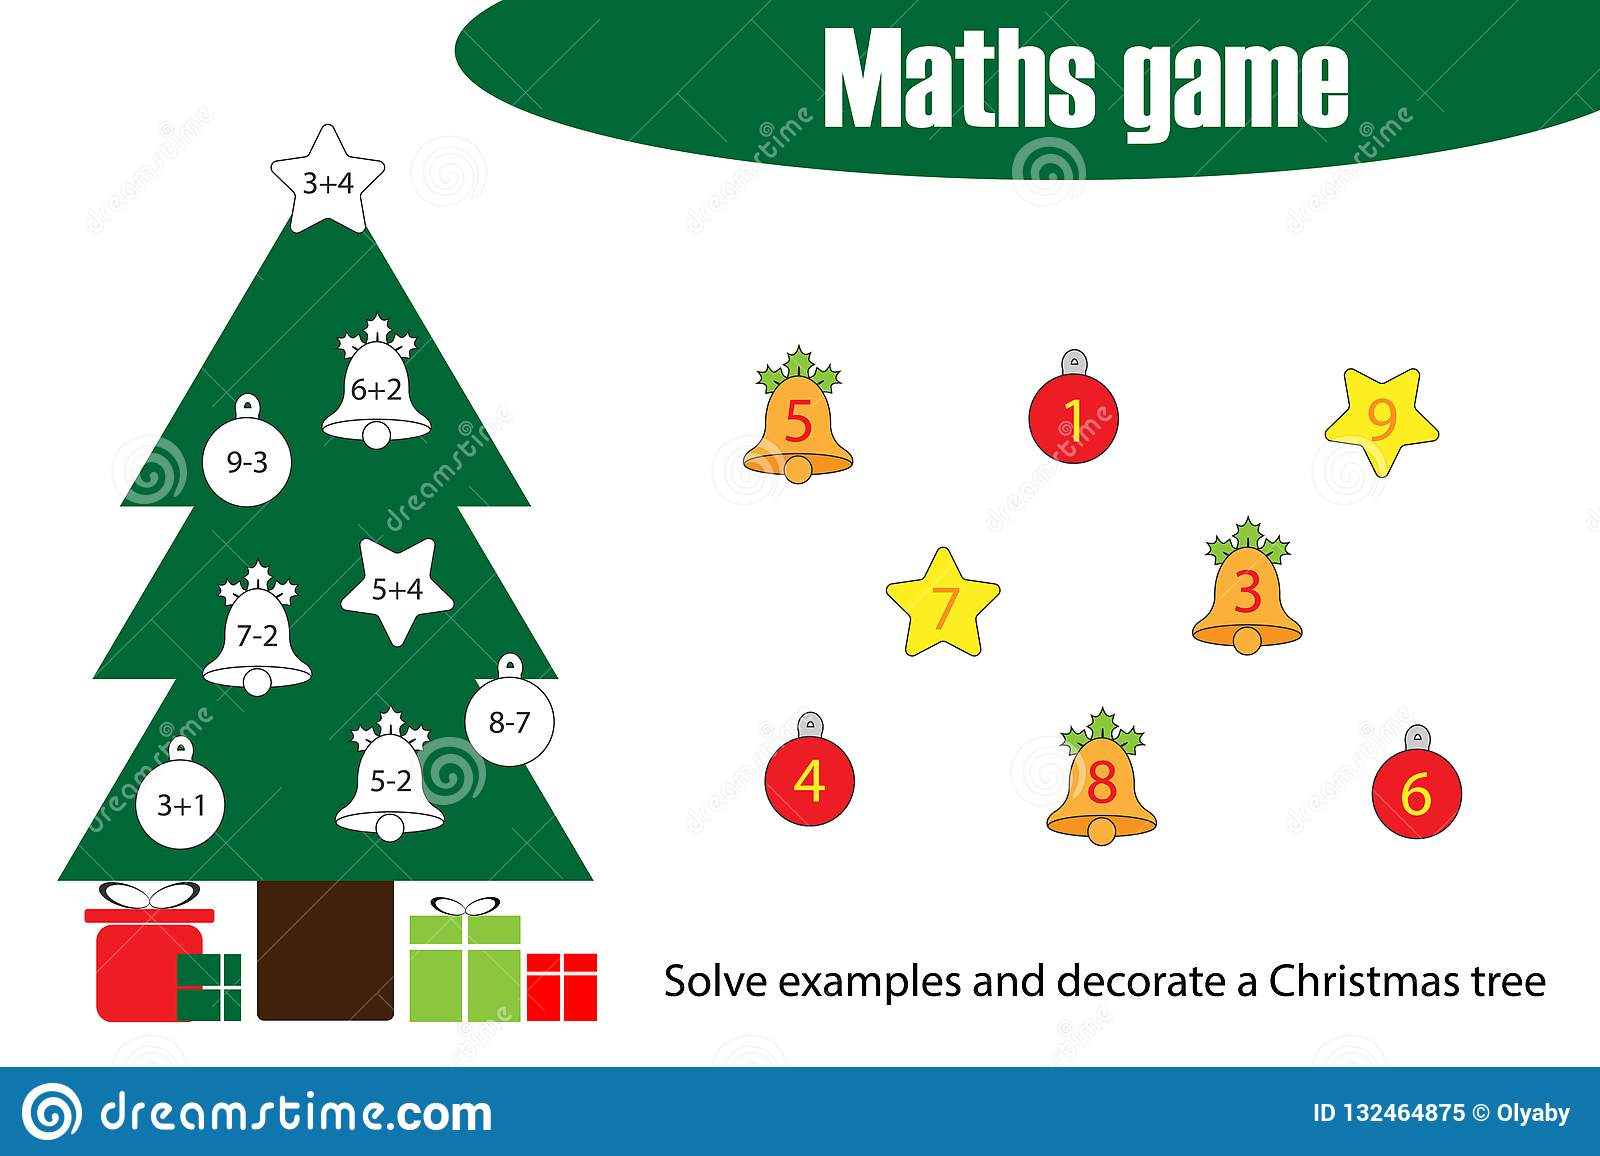 Maths Game With Decoration Christmas Tree For Children